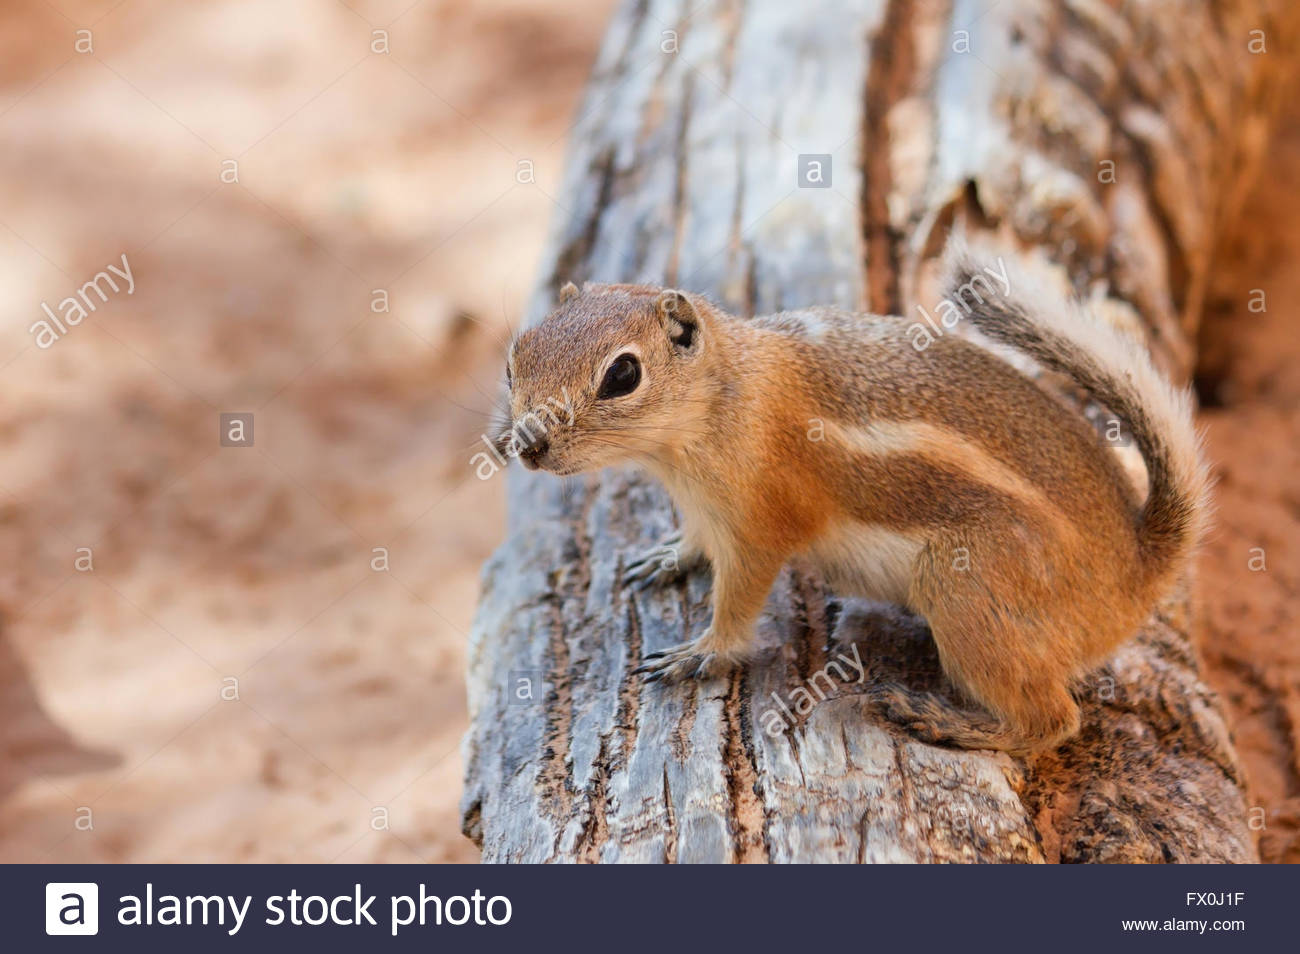 Antelope Squirrel in Canyonlands National Park, UT - Stock Image